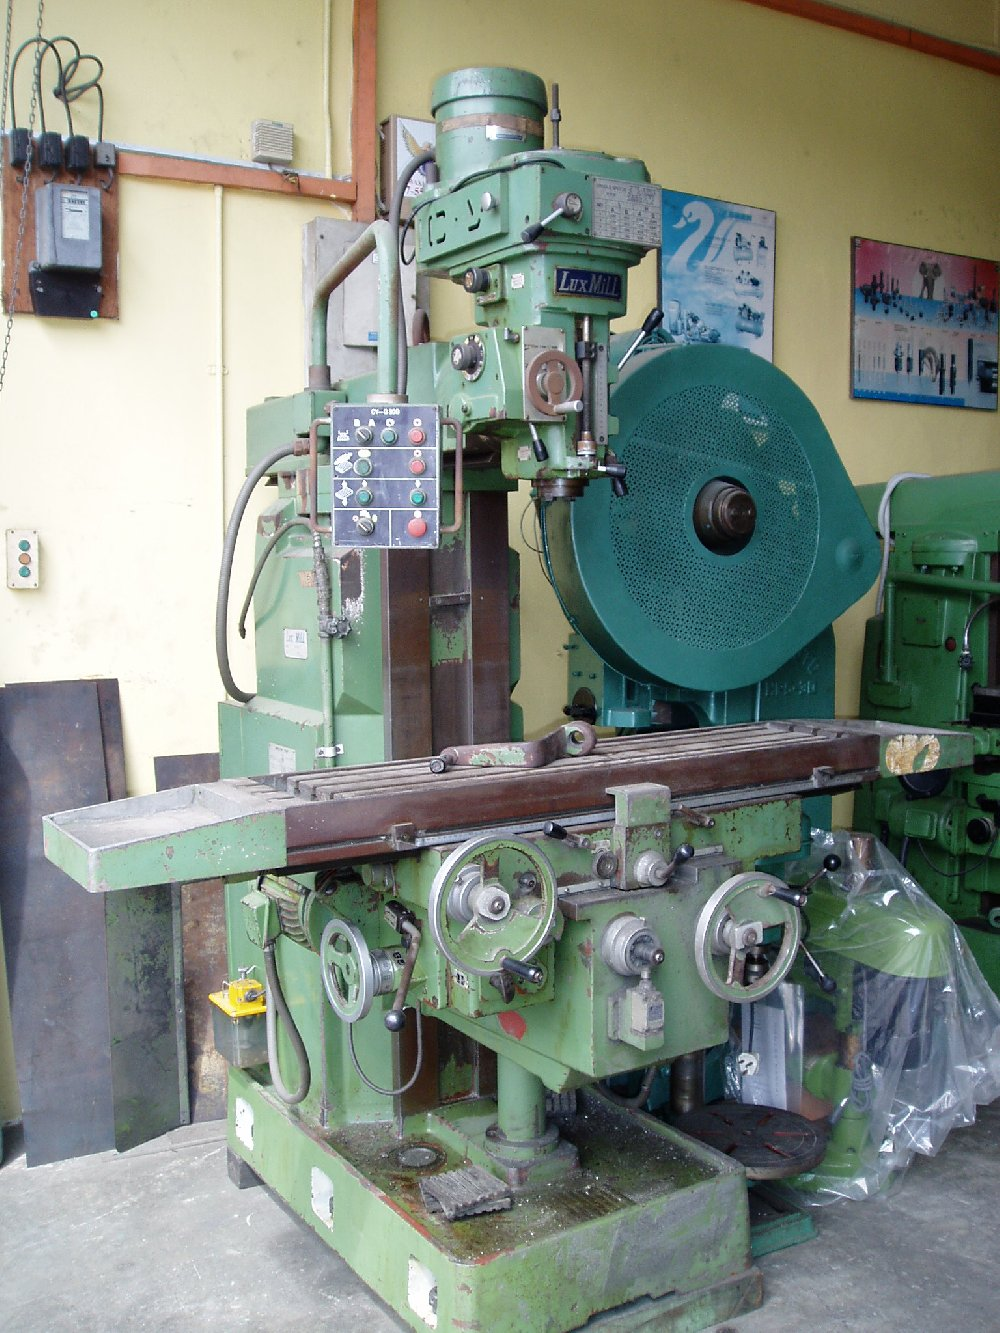 Recon Taiwan 3Hp Milling machine (5 Hp body)